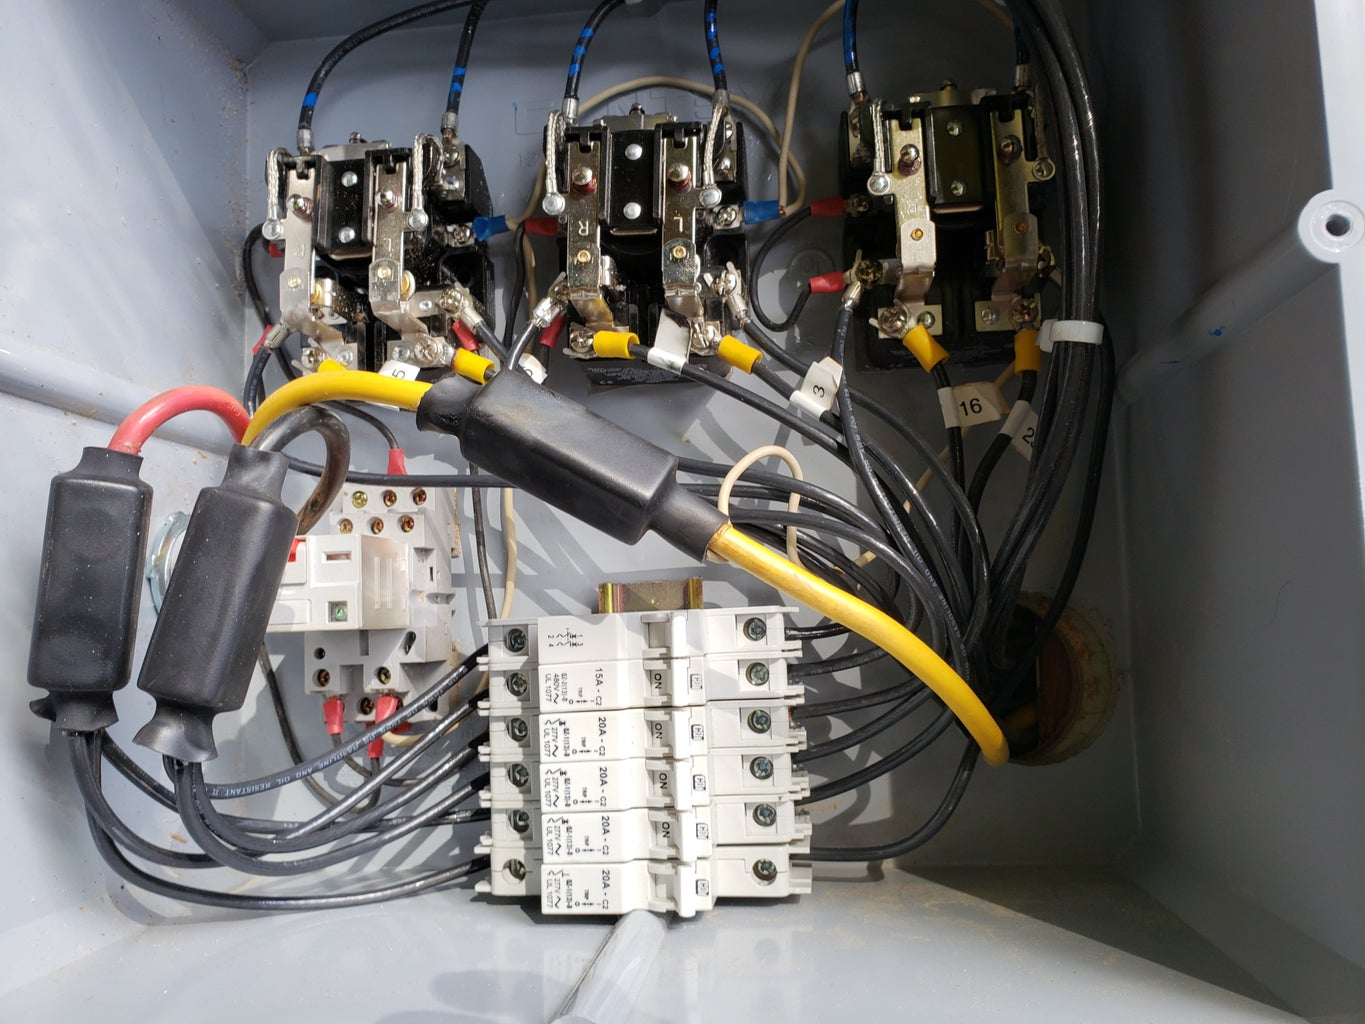 More Wires...